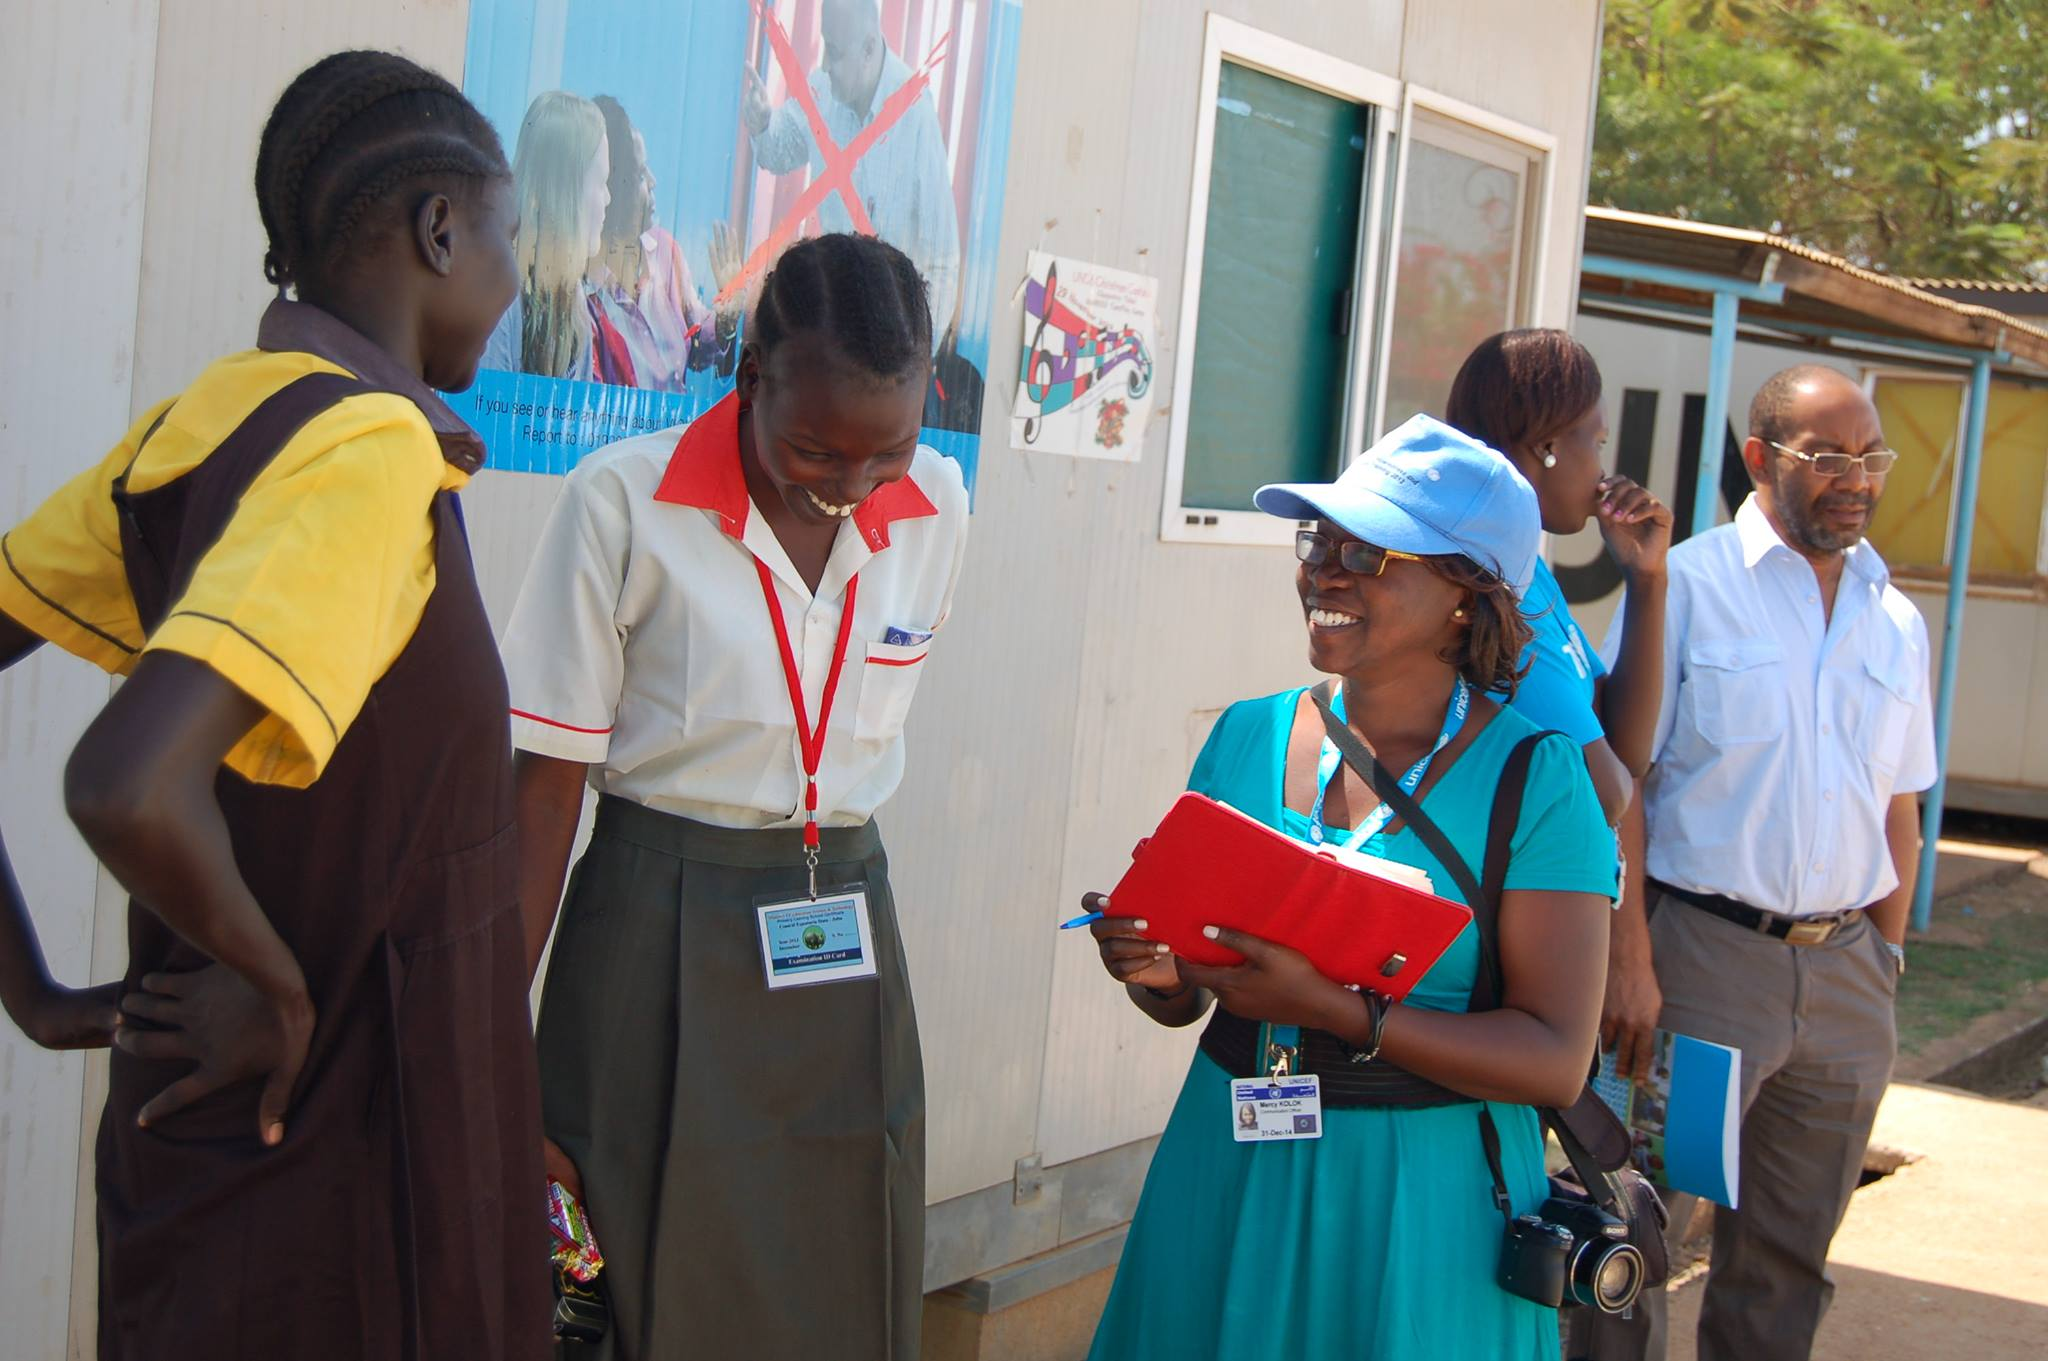 A woman in a blue hat talking to a pair of girl school students